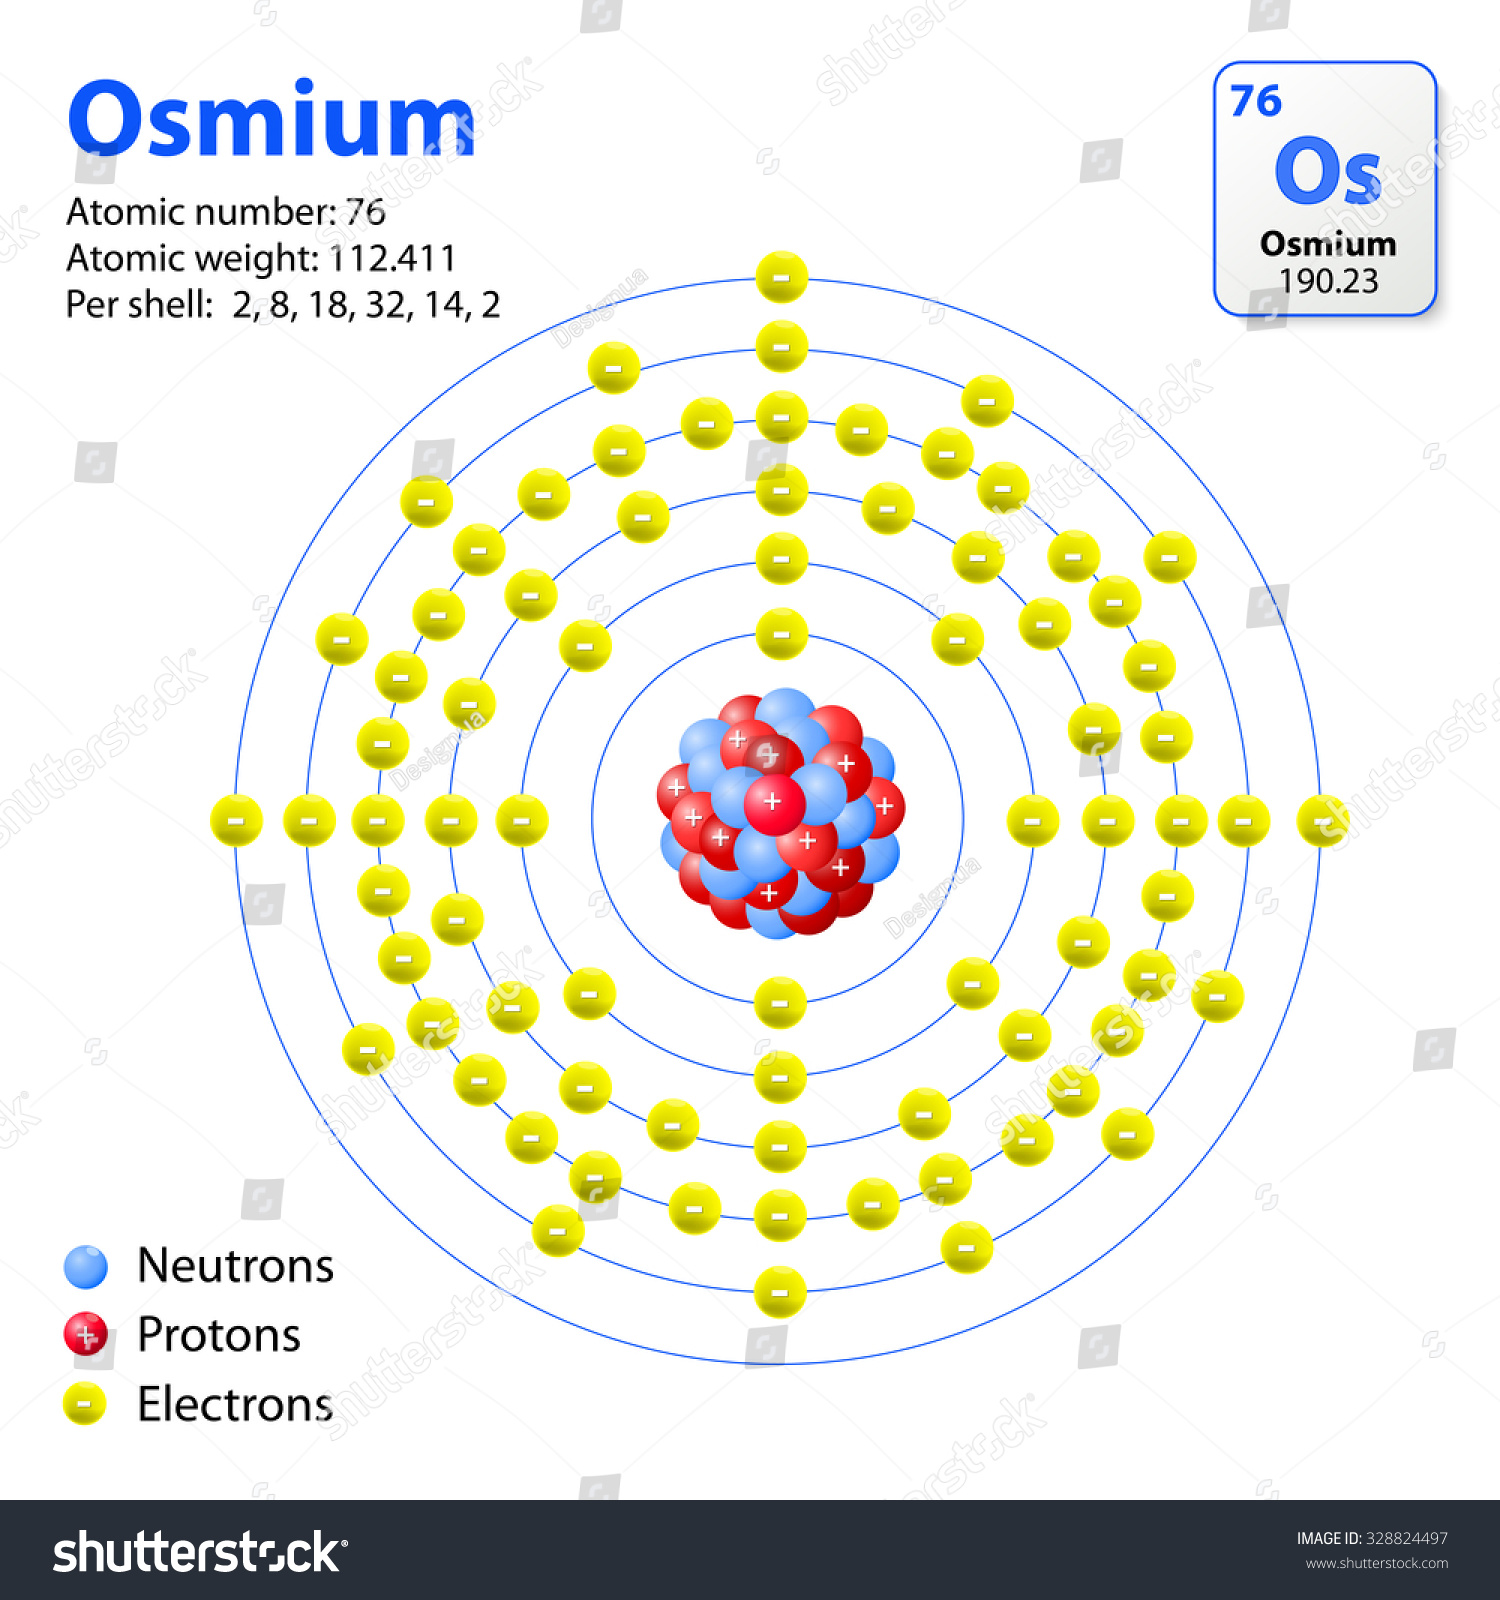 This Diagram Shows The Electron Shell Configuration For The Osmium Atom. Ostium - Transition Metal In The Platinum Group Stock Vector Illustration ...